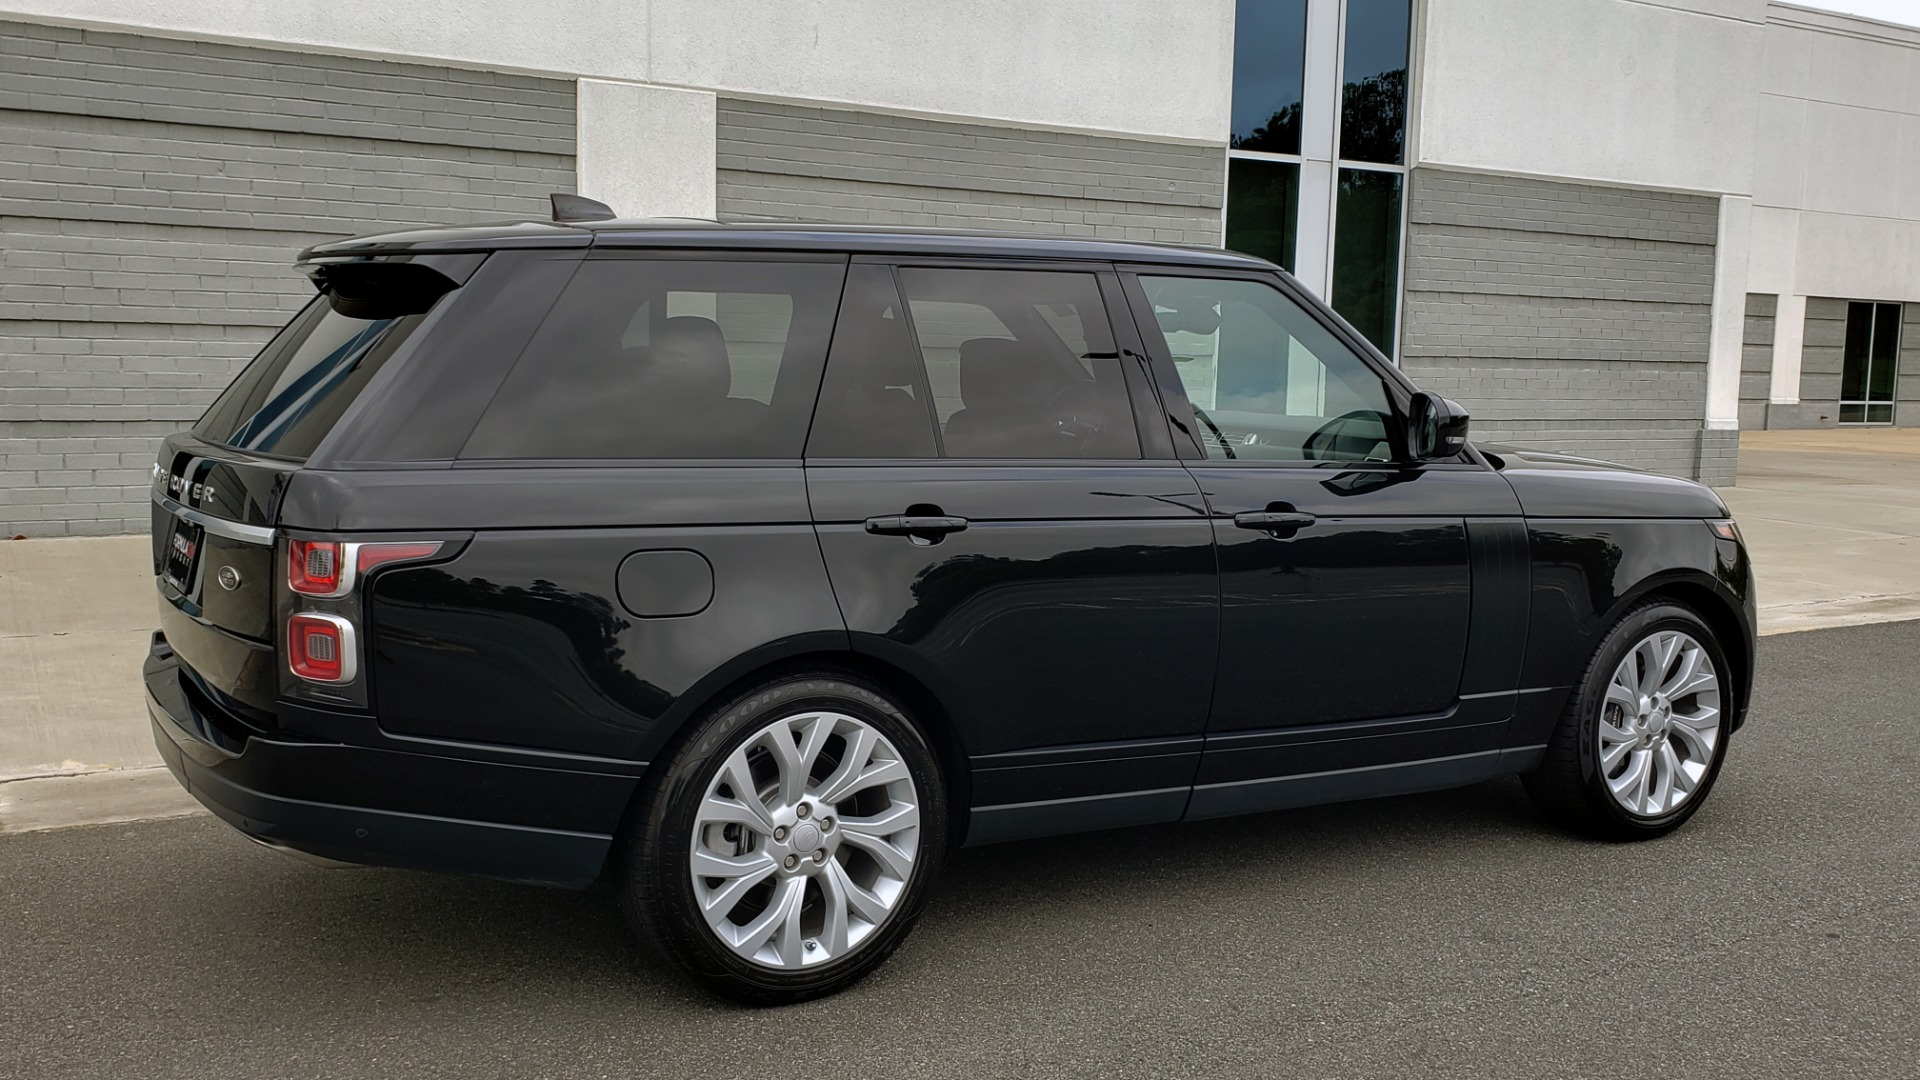 Used 2018 Land Rover RANGE ROVER SUPERCHARGED V8 / DRIVE PRO / NAV / PANO-ROOF / REARVIEW for sale $84,995 at Formula Imports in Charlotte NC 28227 9